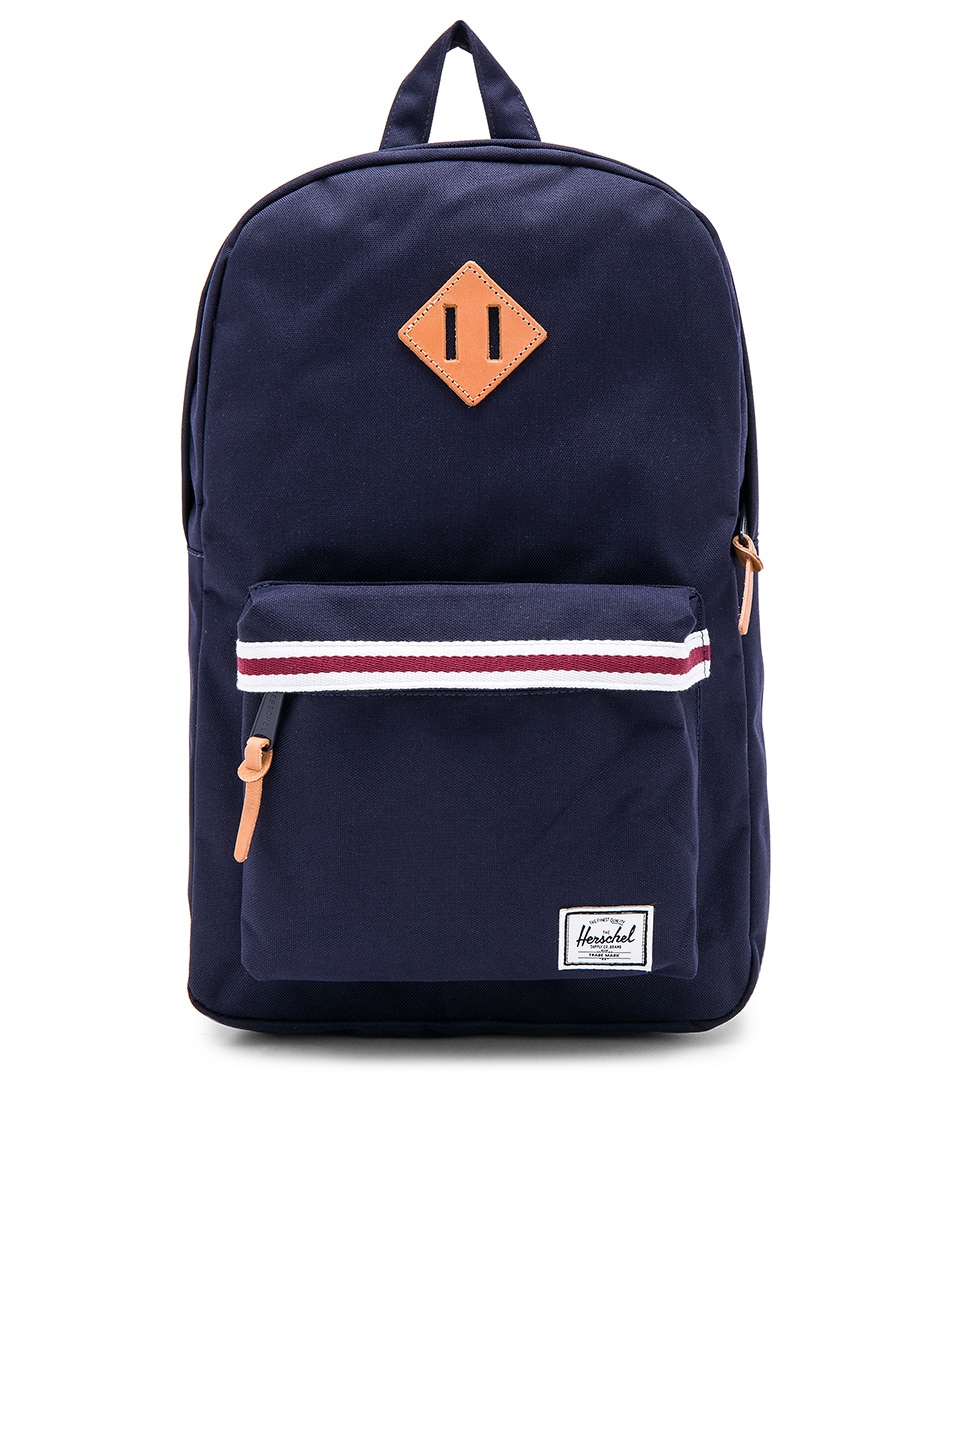 Herschel Supply Co. Heritage Mid-Volume Backpack In Navy. In Peacoat e0e0014b5de98